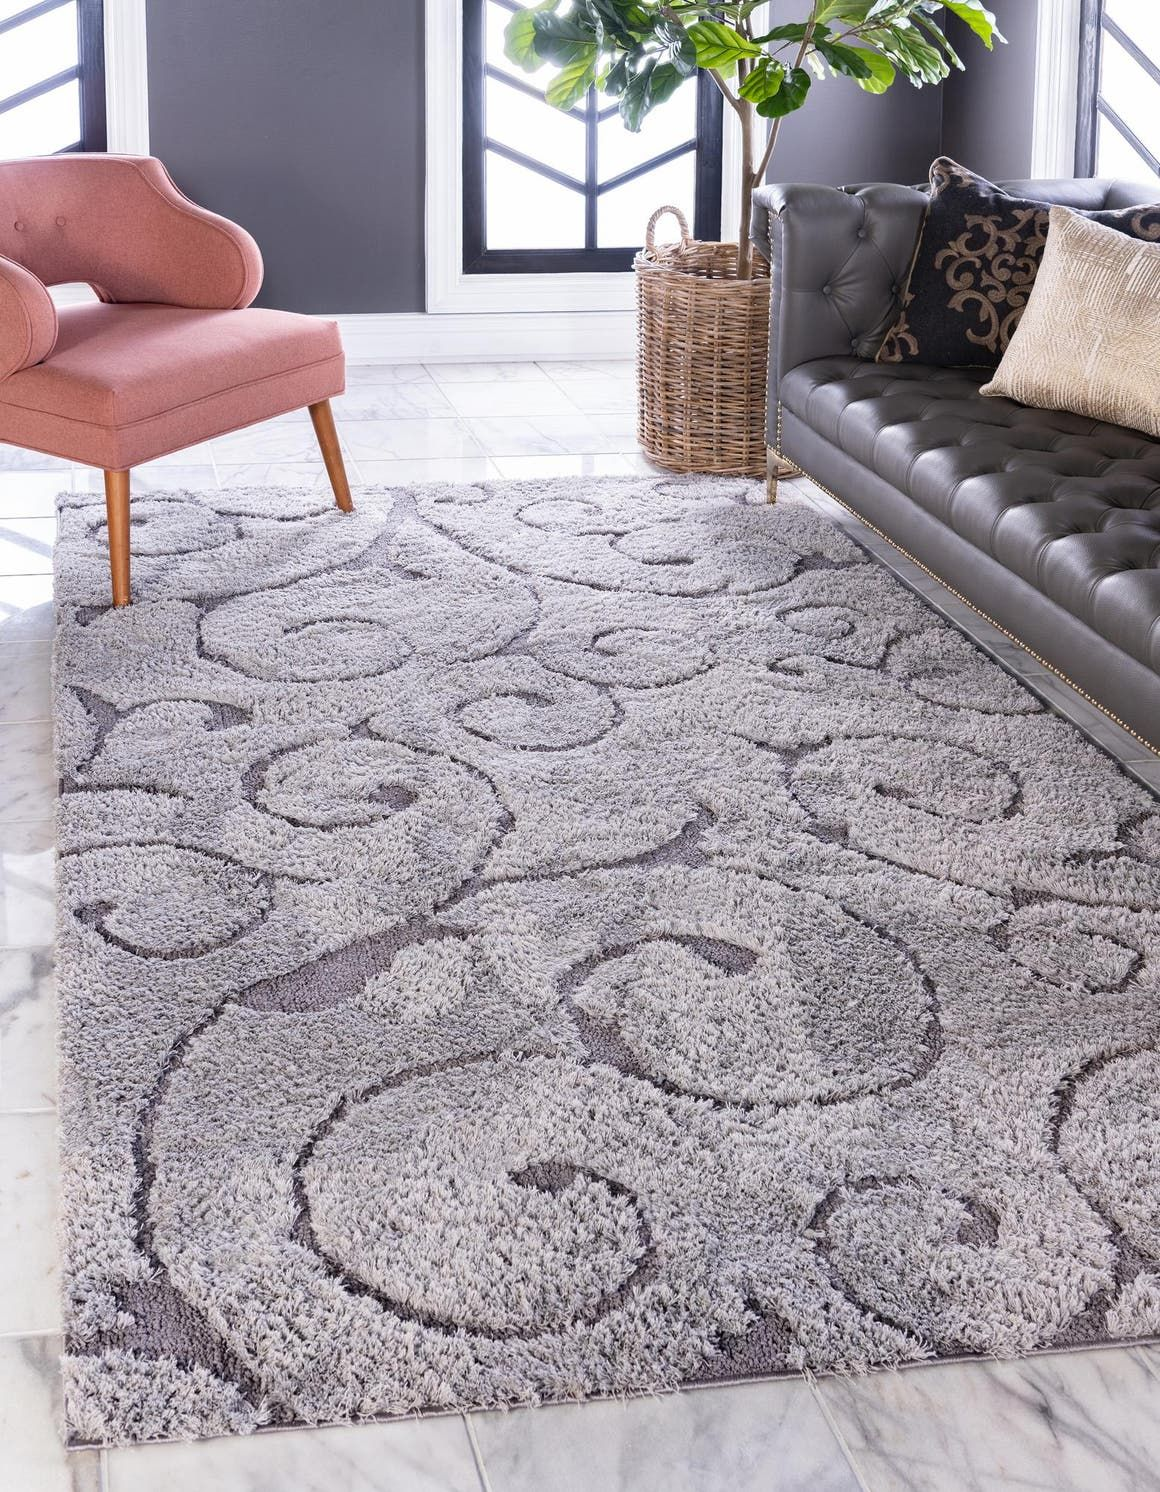 Gray Floral Shag Area Rug In 2020 Rugs